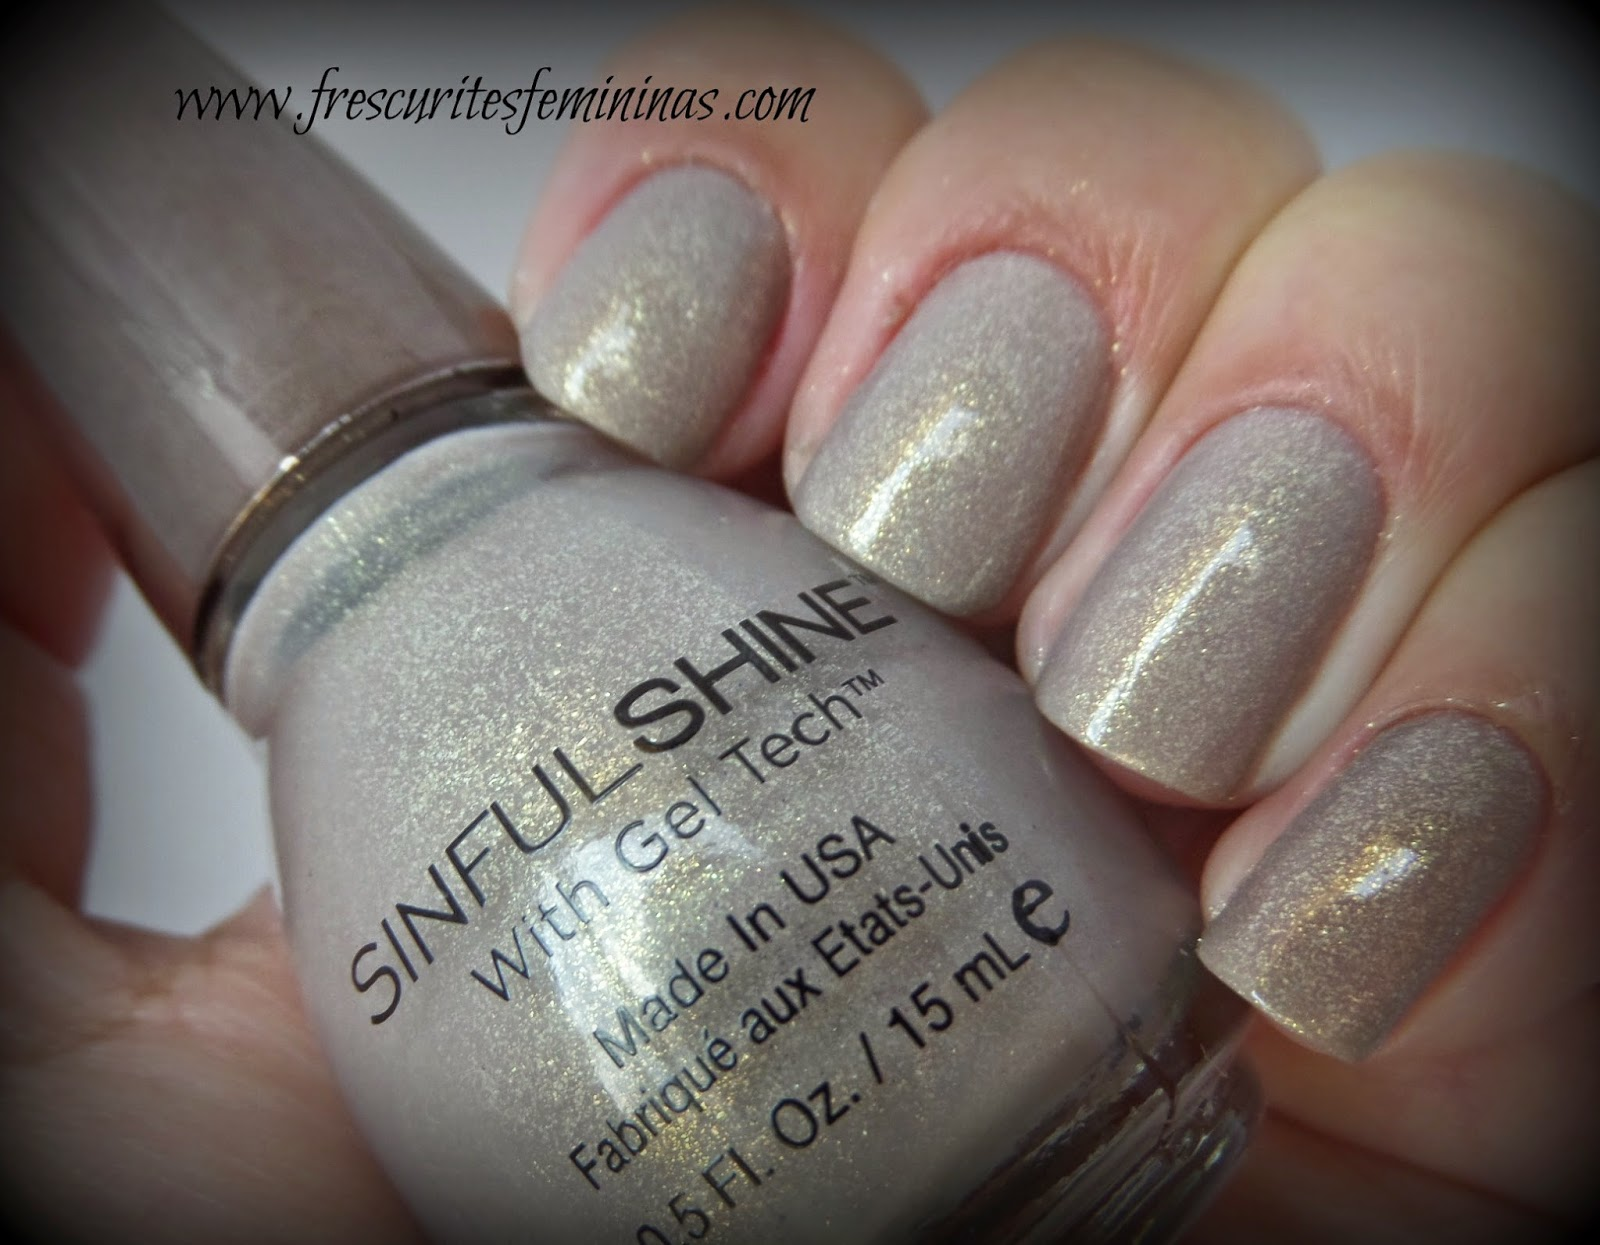 Sinfulshine, sinfulcolors, sinful shine, Prosecco, gel tech, frescurites femininas